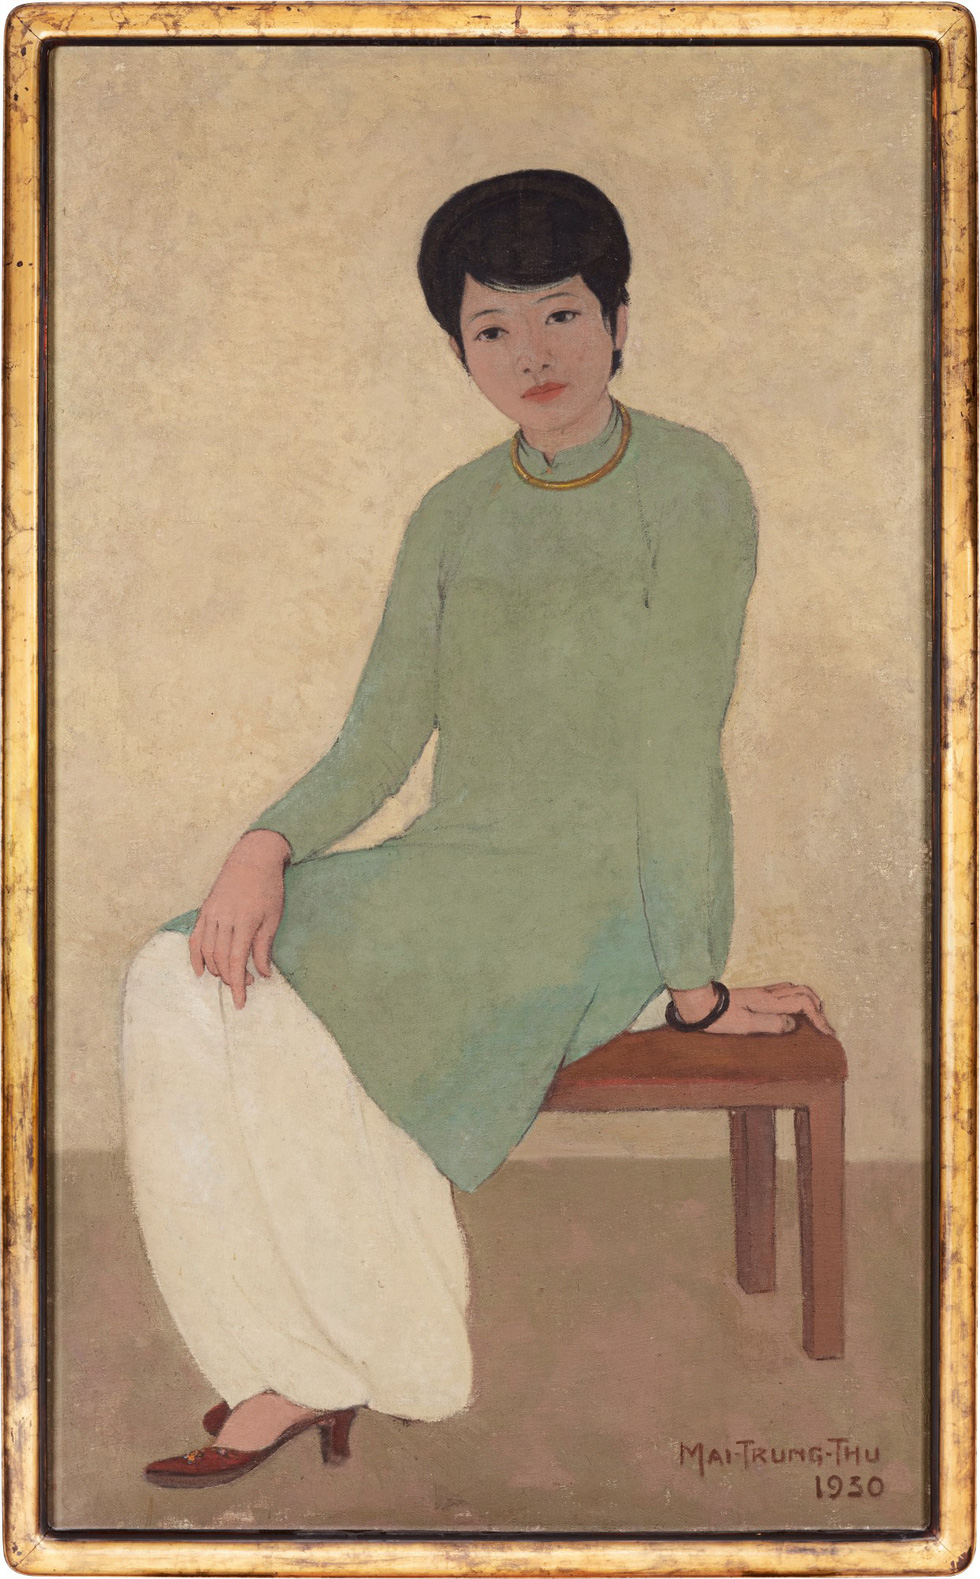 'Portrait of Mademoiselle Phuong' (1930) by Mai Trung Thu